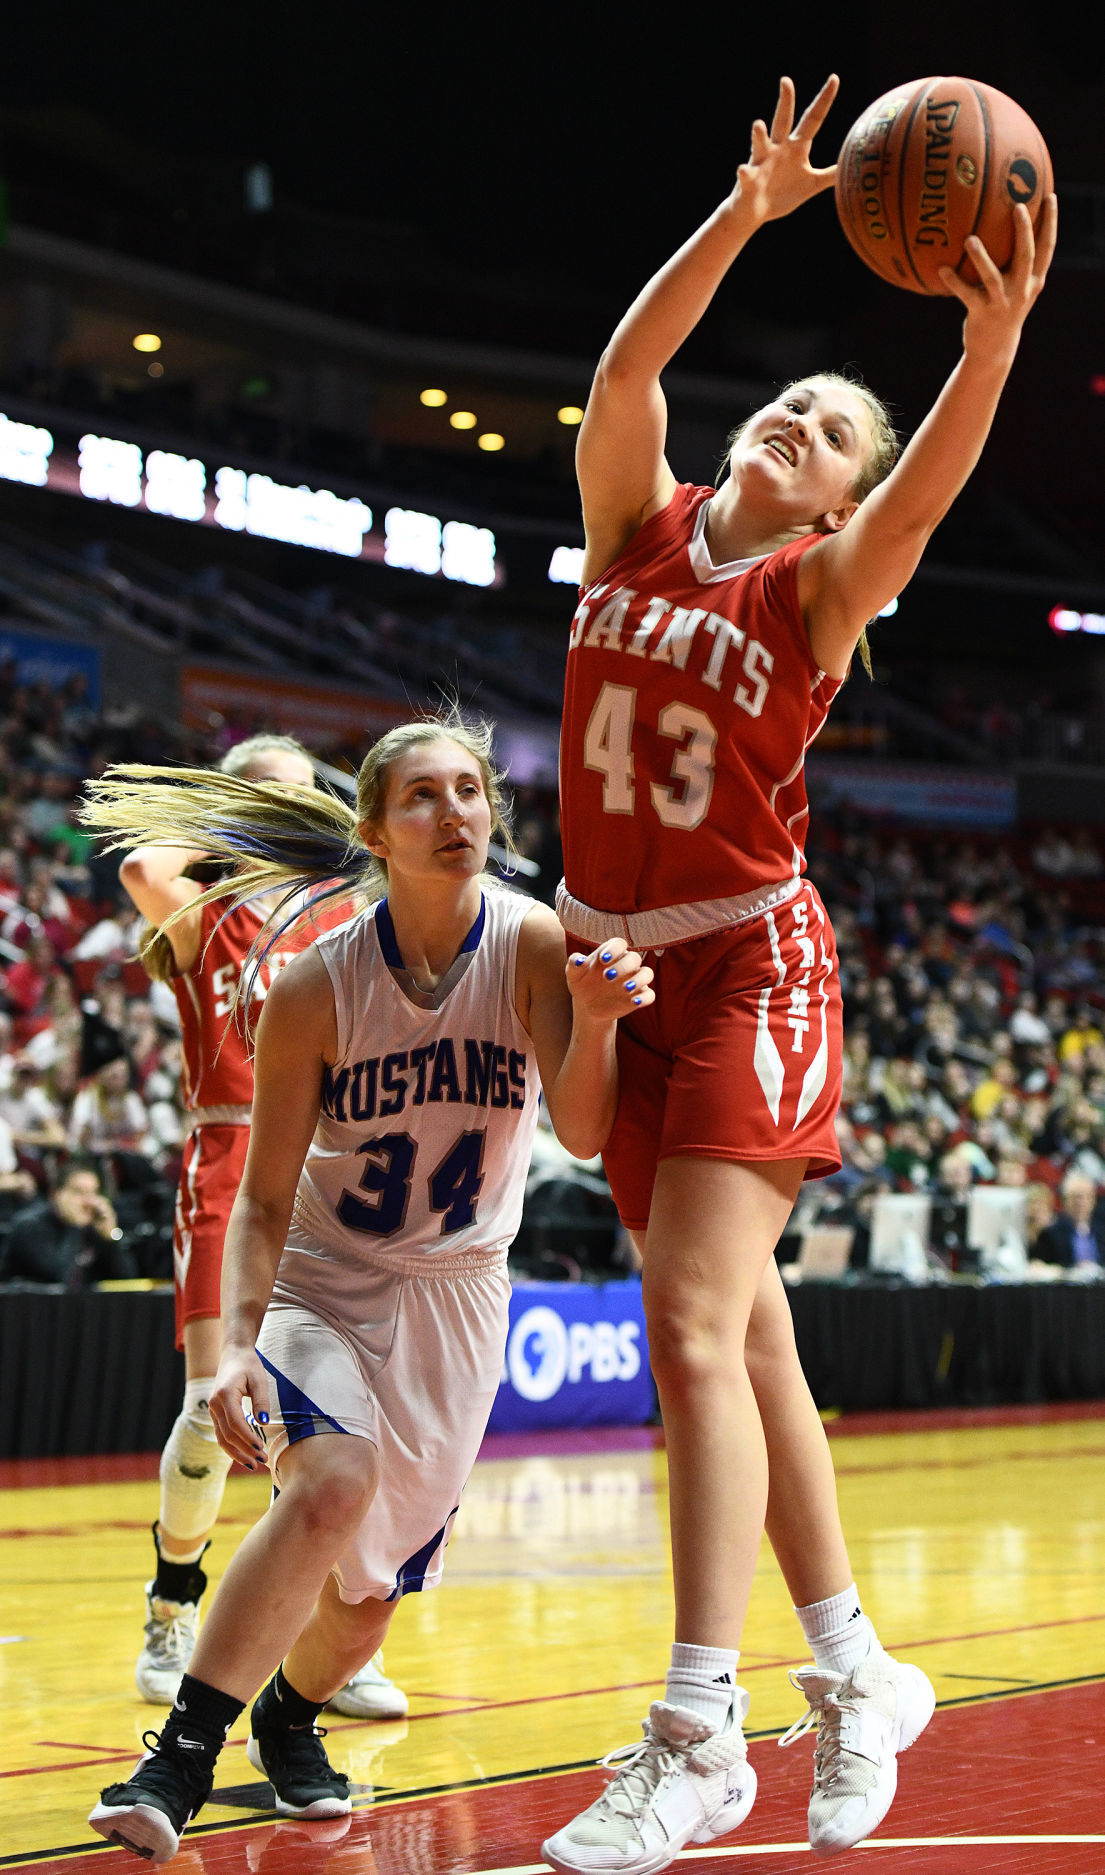 Newell-Fonda vs St. Ansgar state basketball